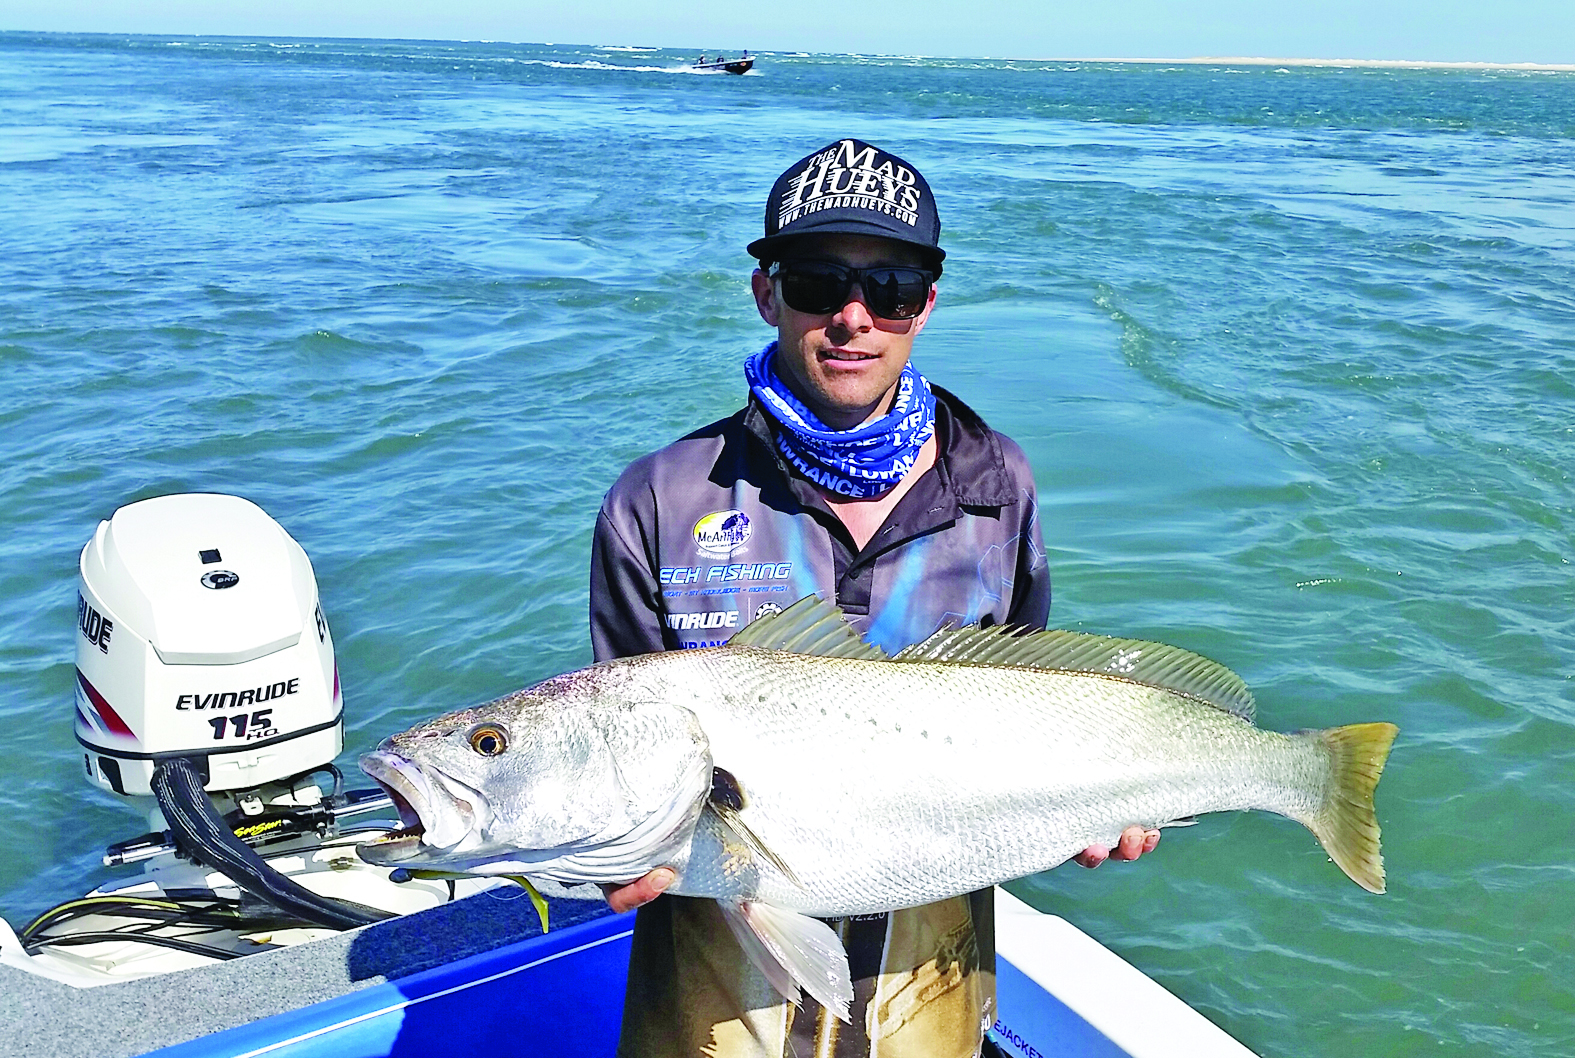 Brenden Whyte caught 103cm of jewfish by-catch on day one.